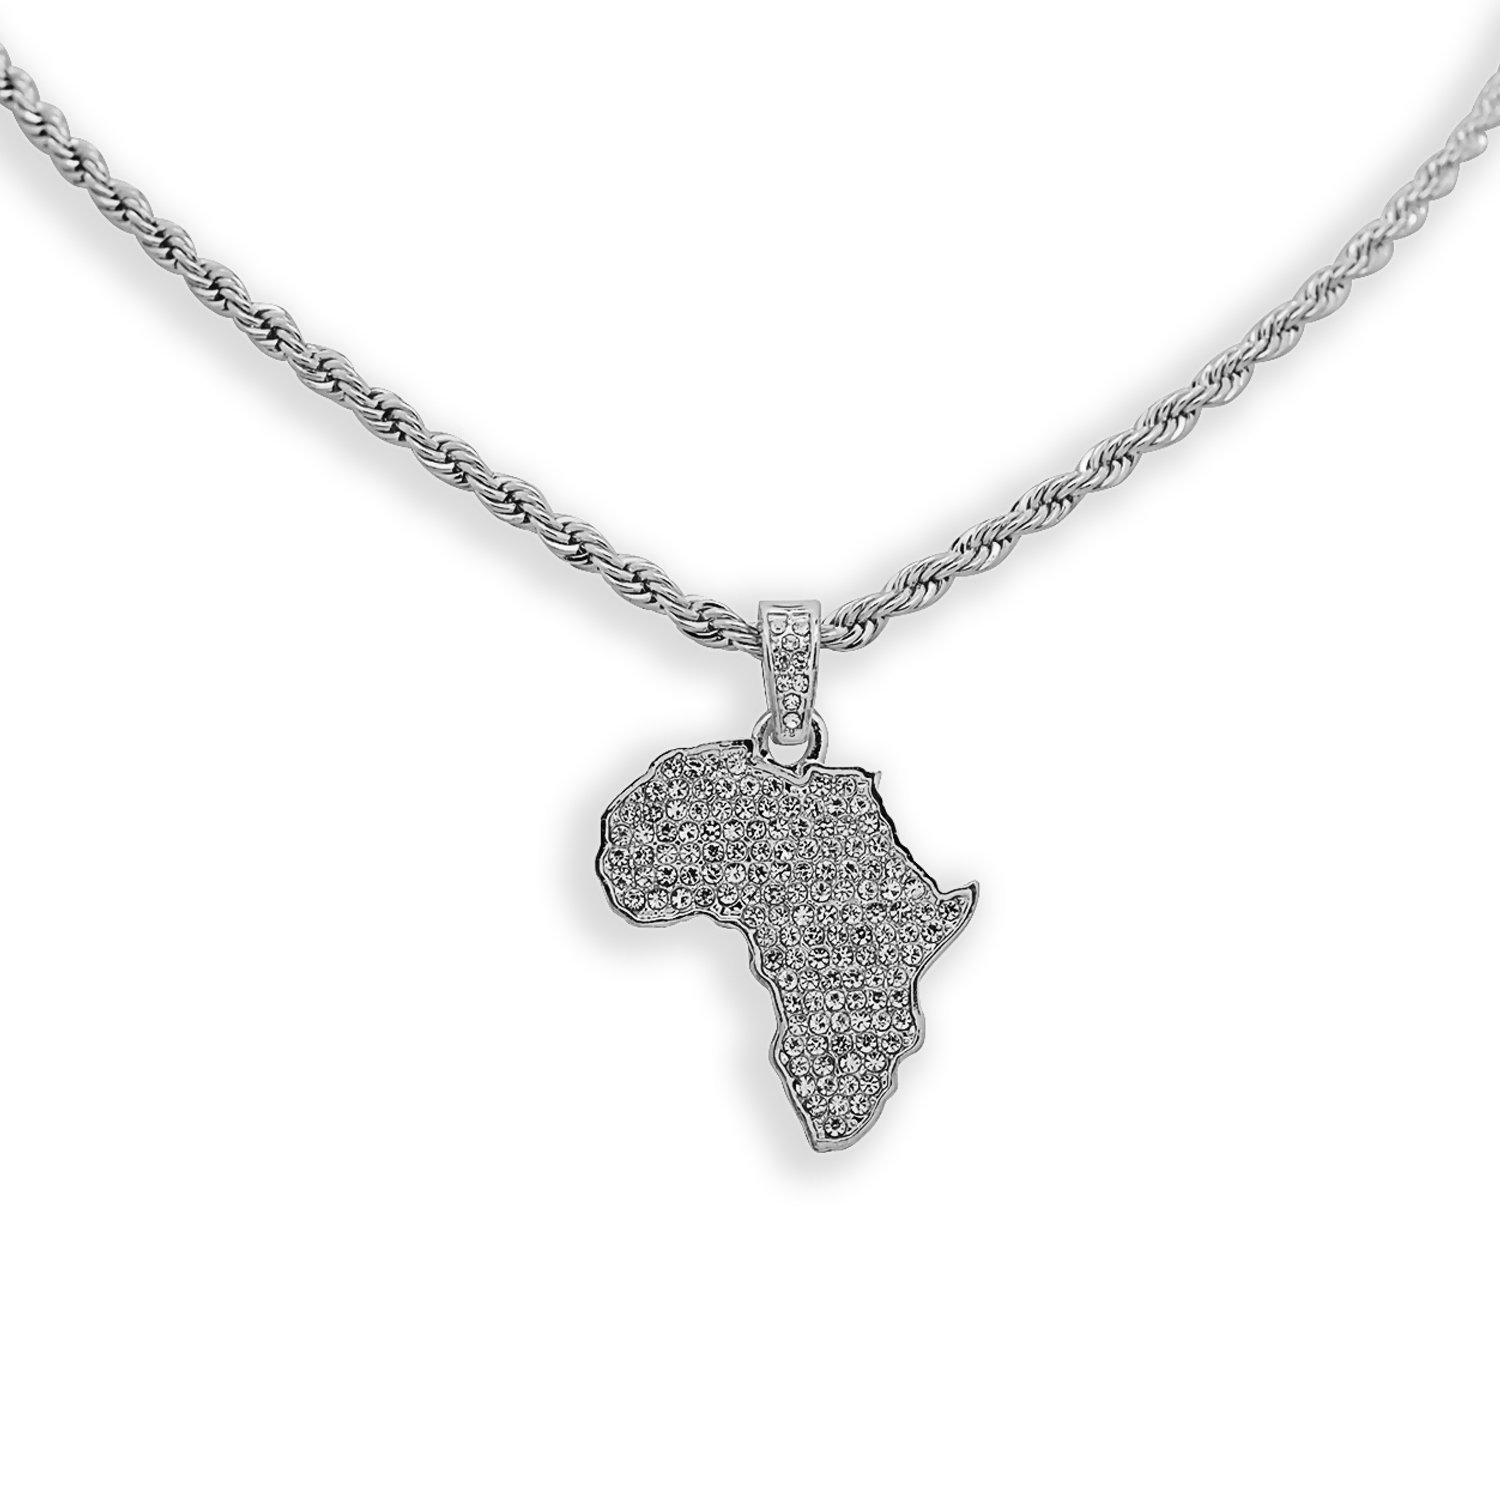 White Gold-Tone Iced Out Hip Hop Bling Africa Pendant with 24'' Solid Rope Necklace Chain